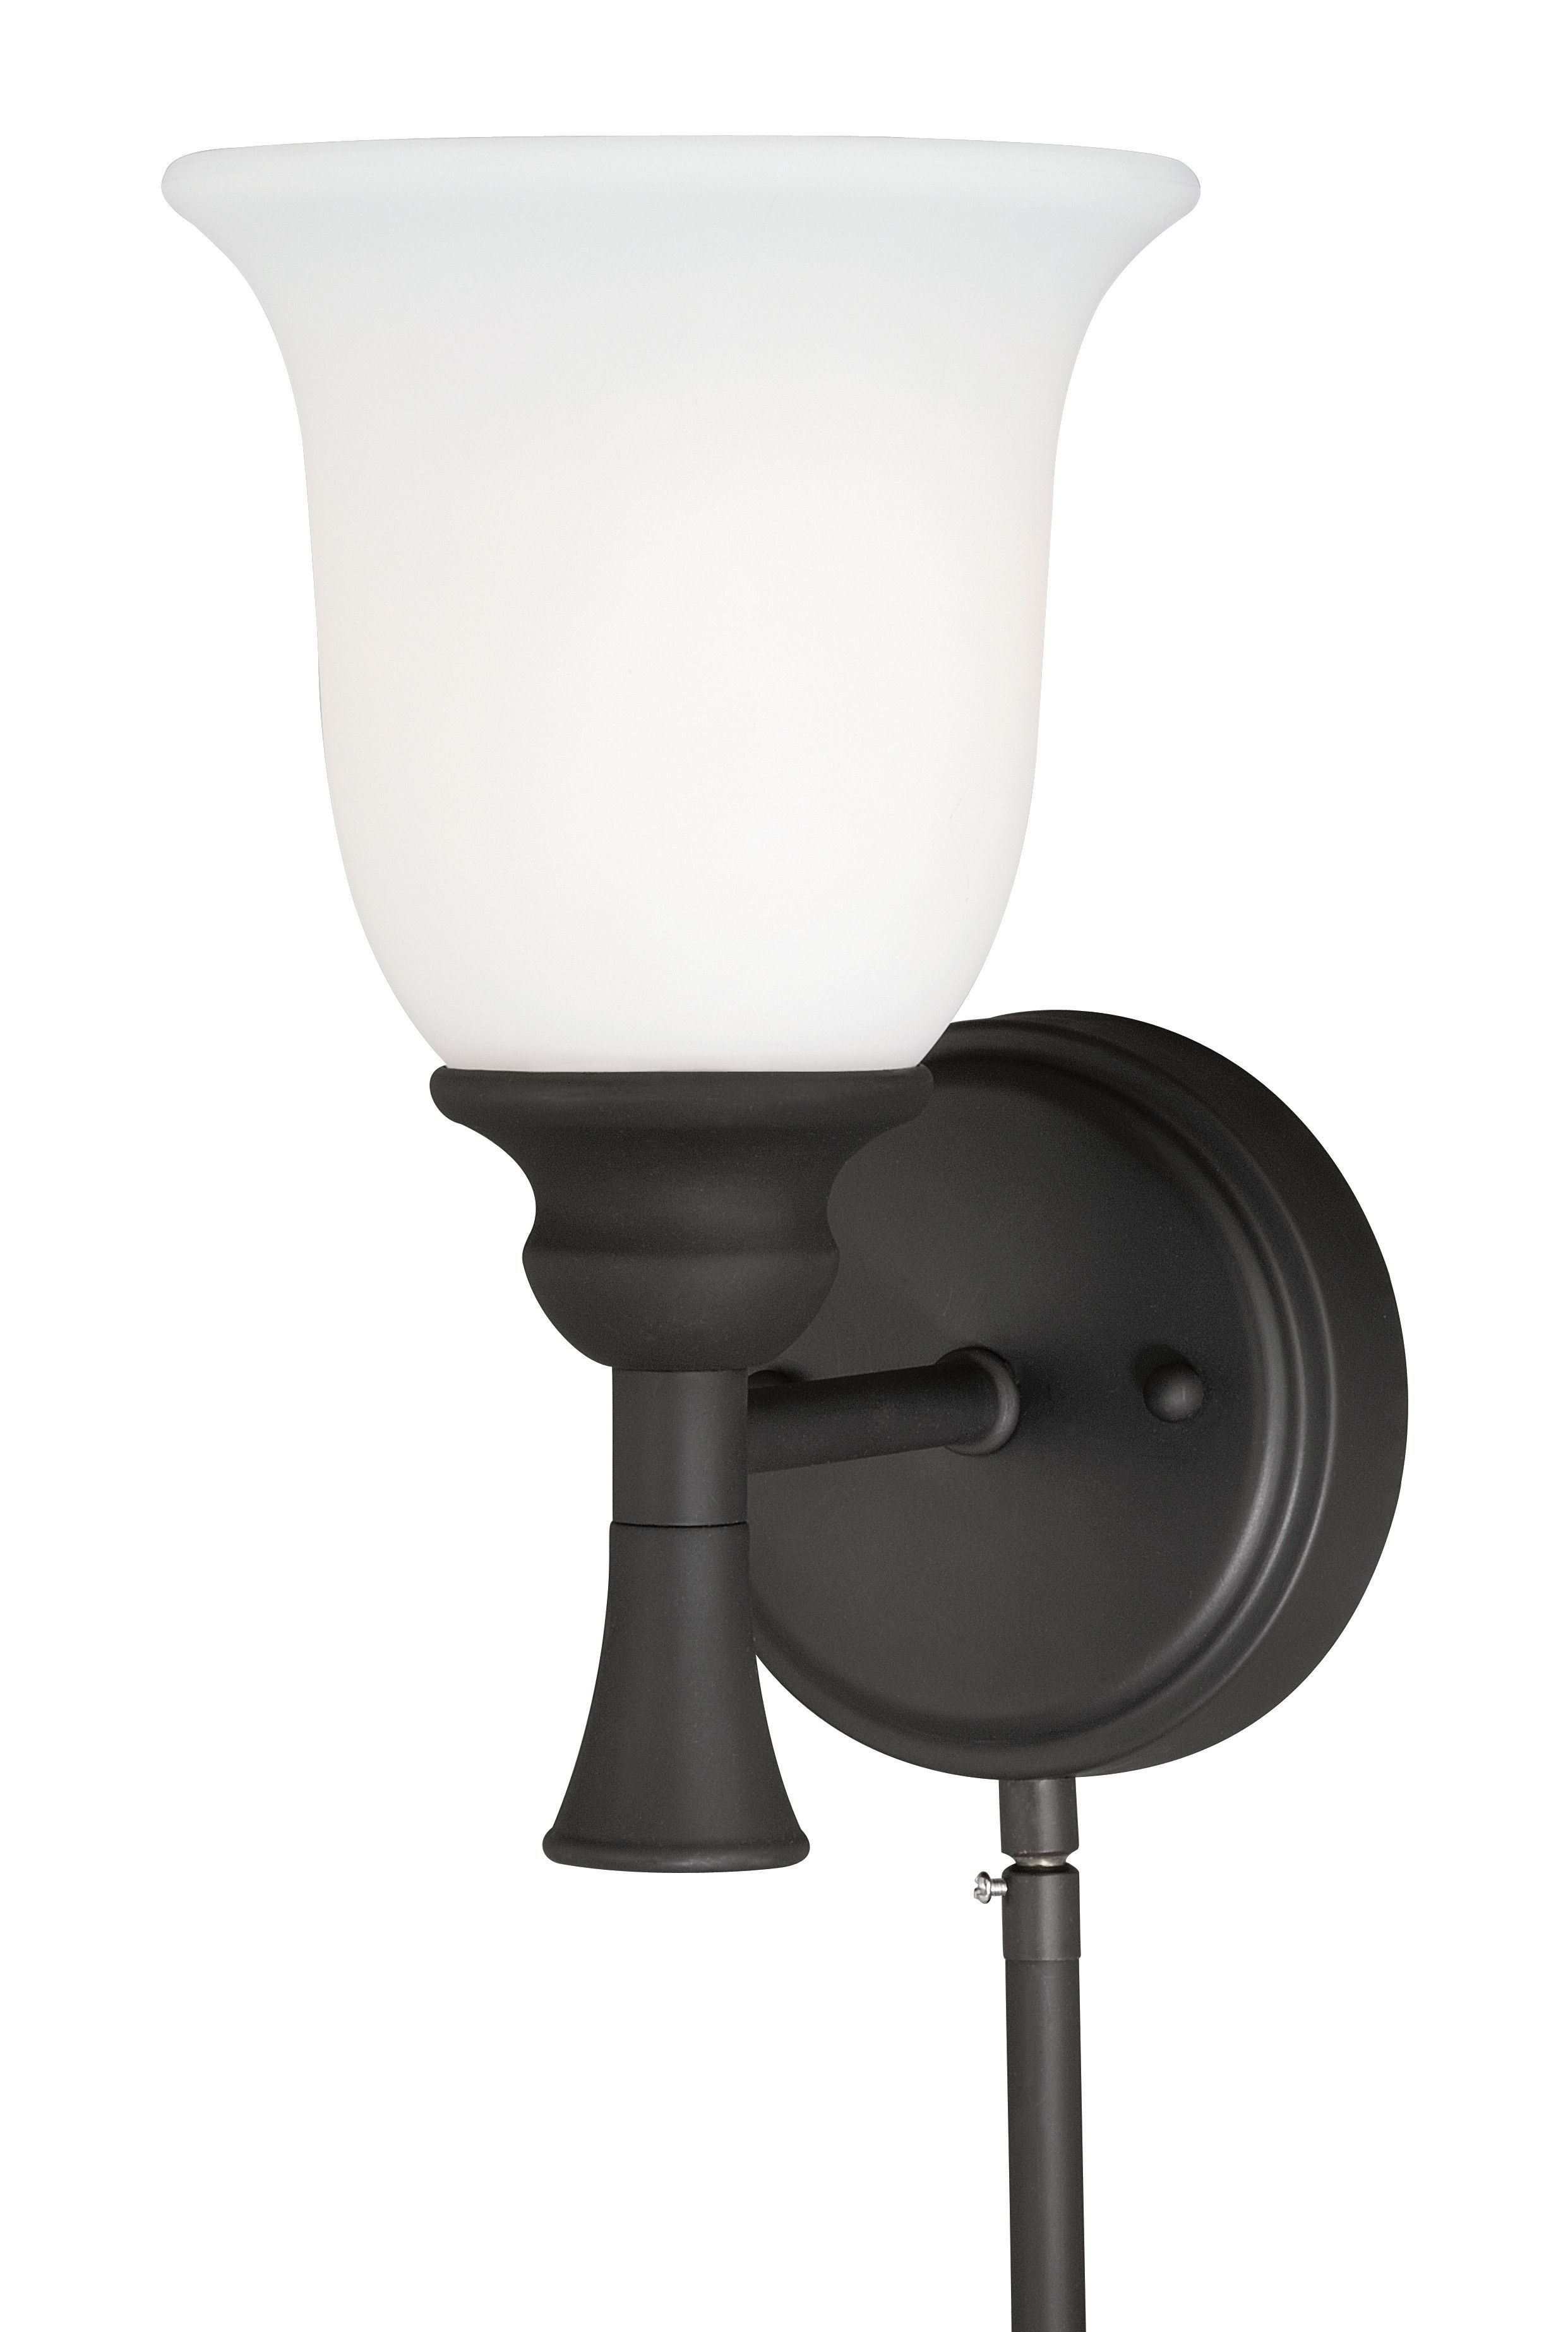 Modern outdoor wall sconce in wall sconce exterior